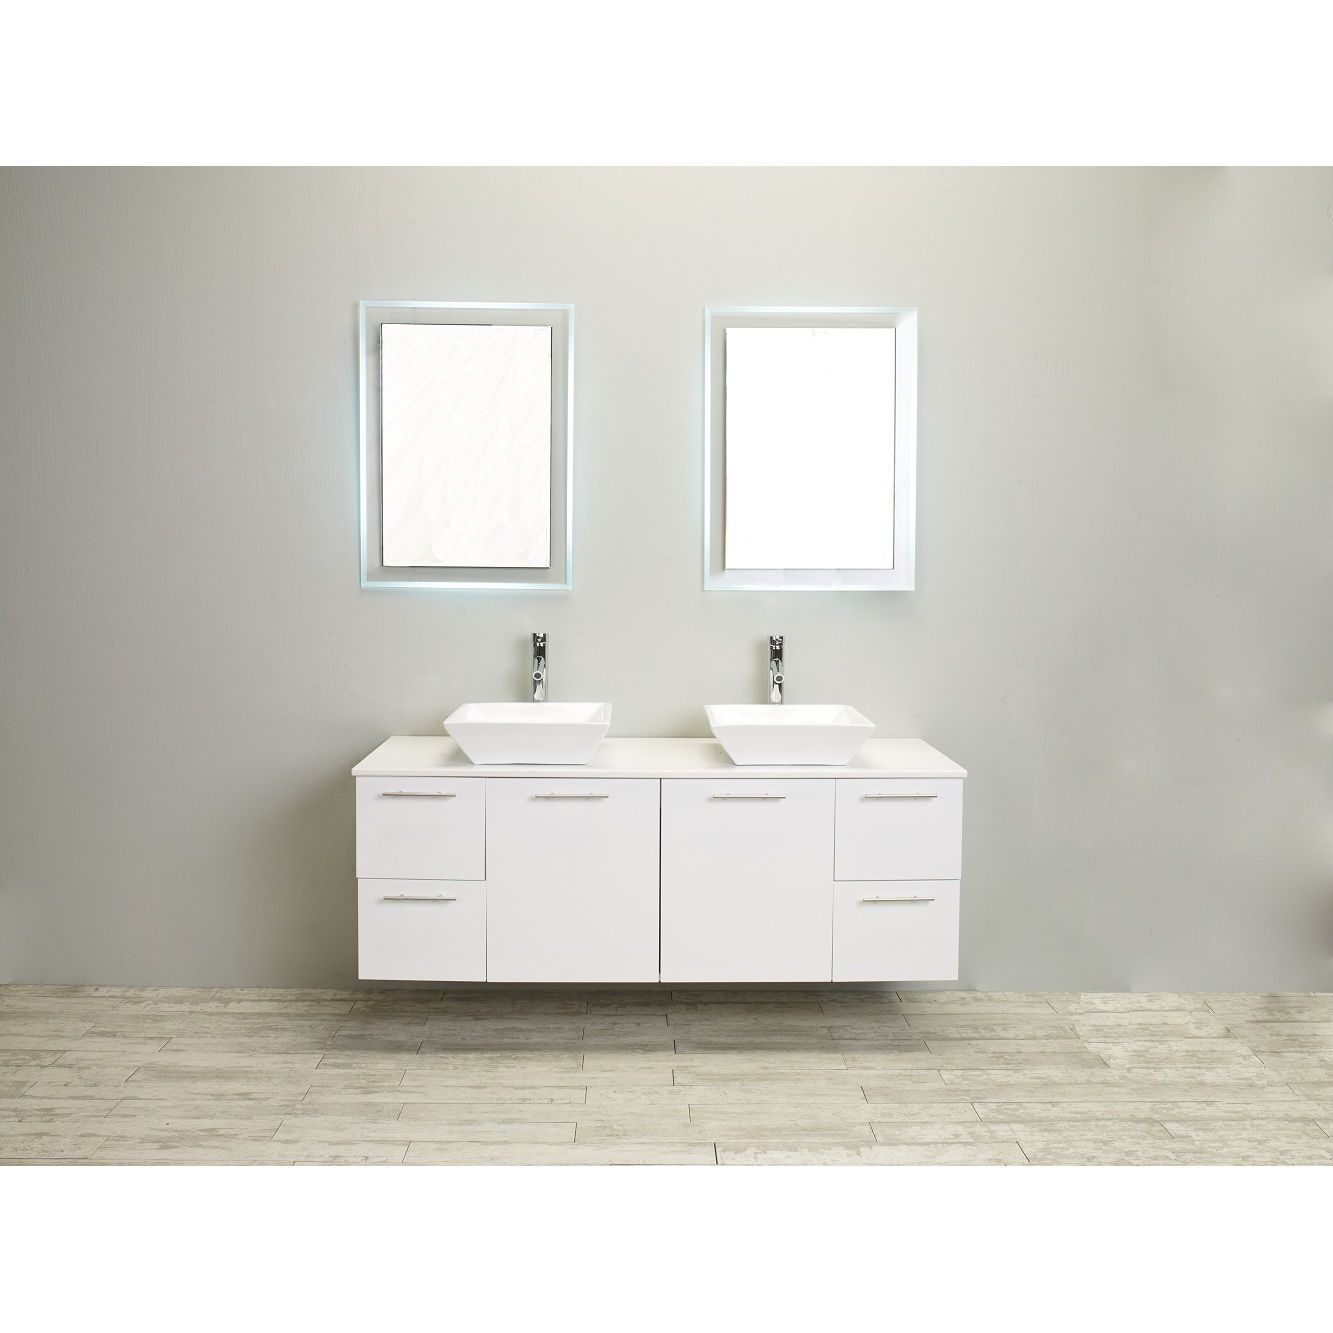 Eviva Luxury 60 Inch White Bathroom Vanity Cabinet Size Double Vanities